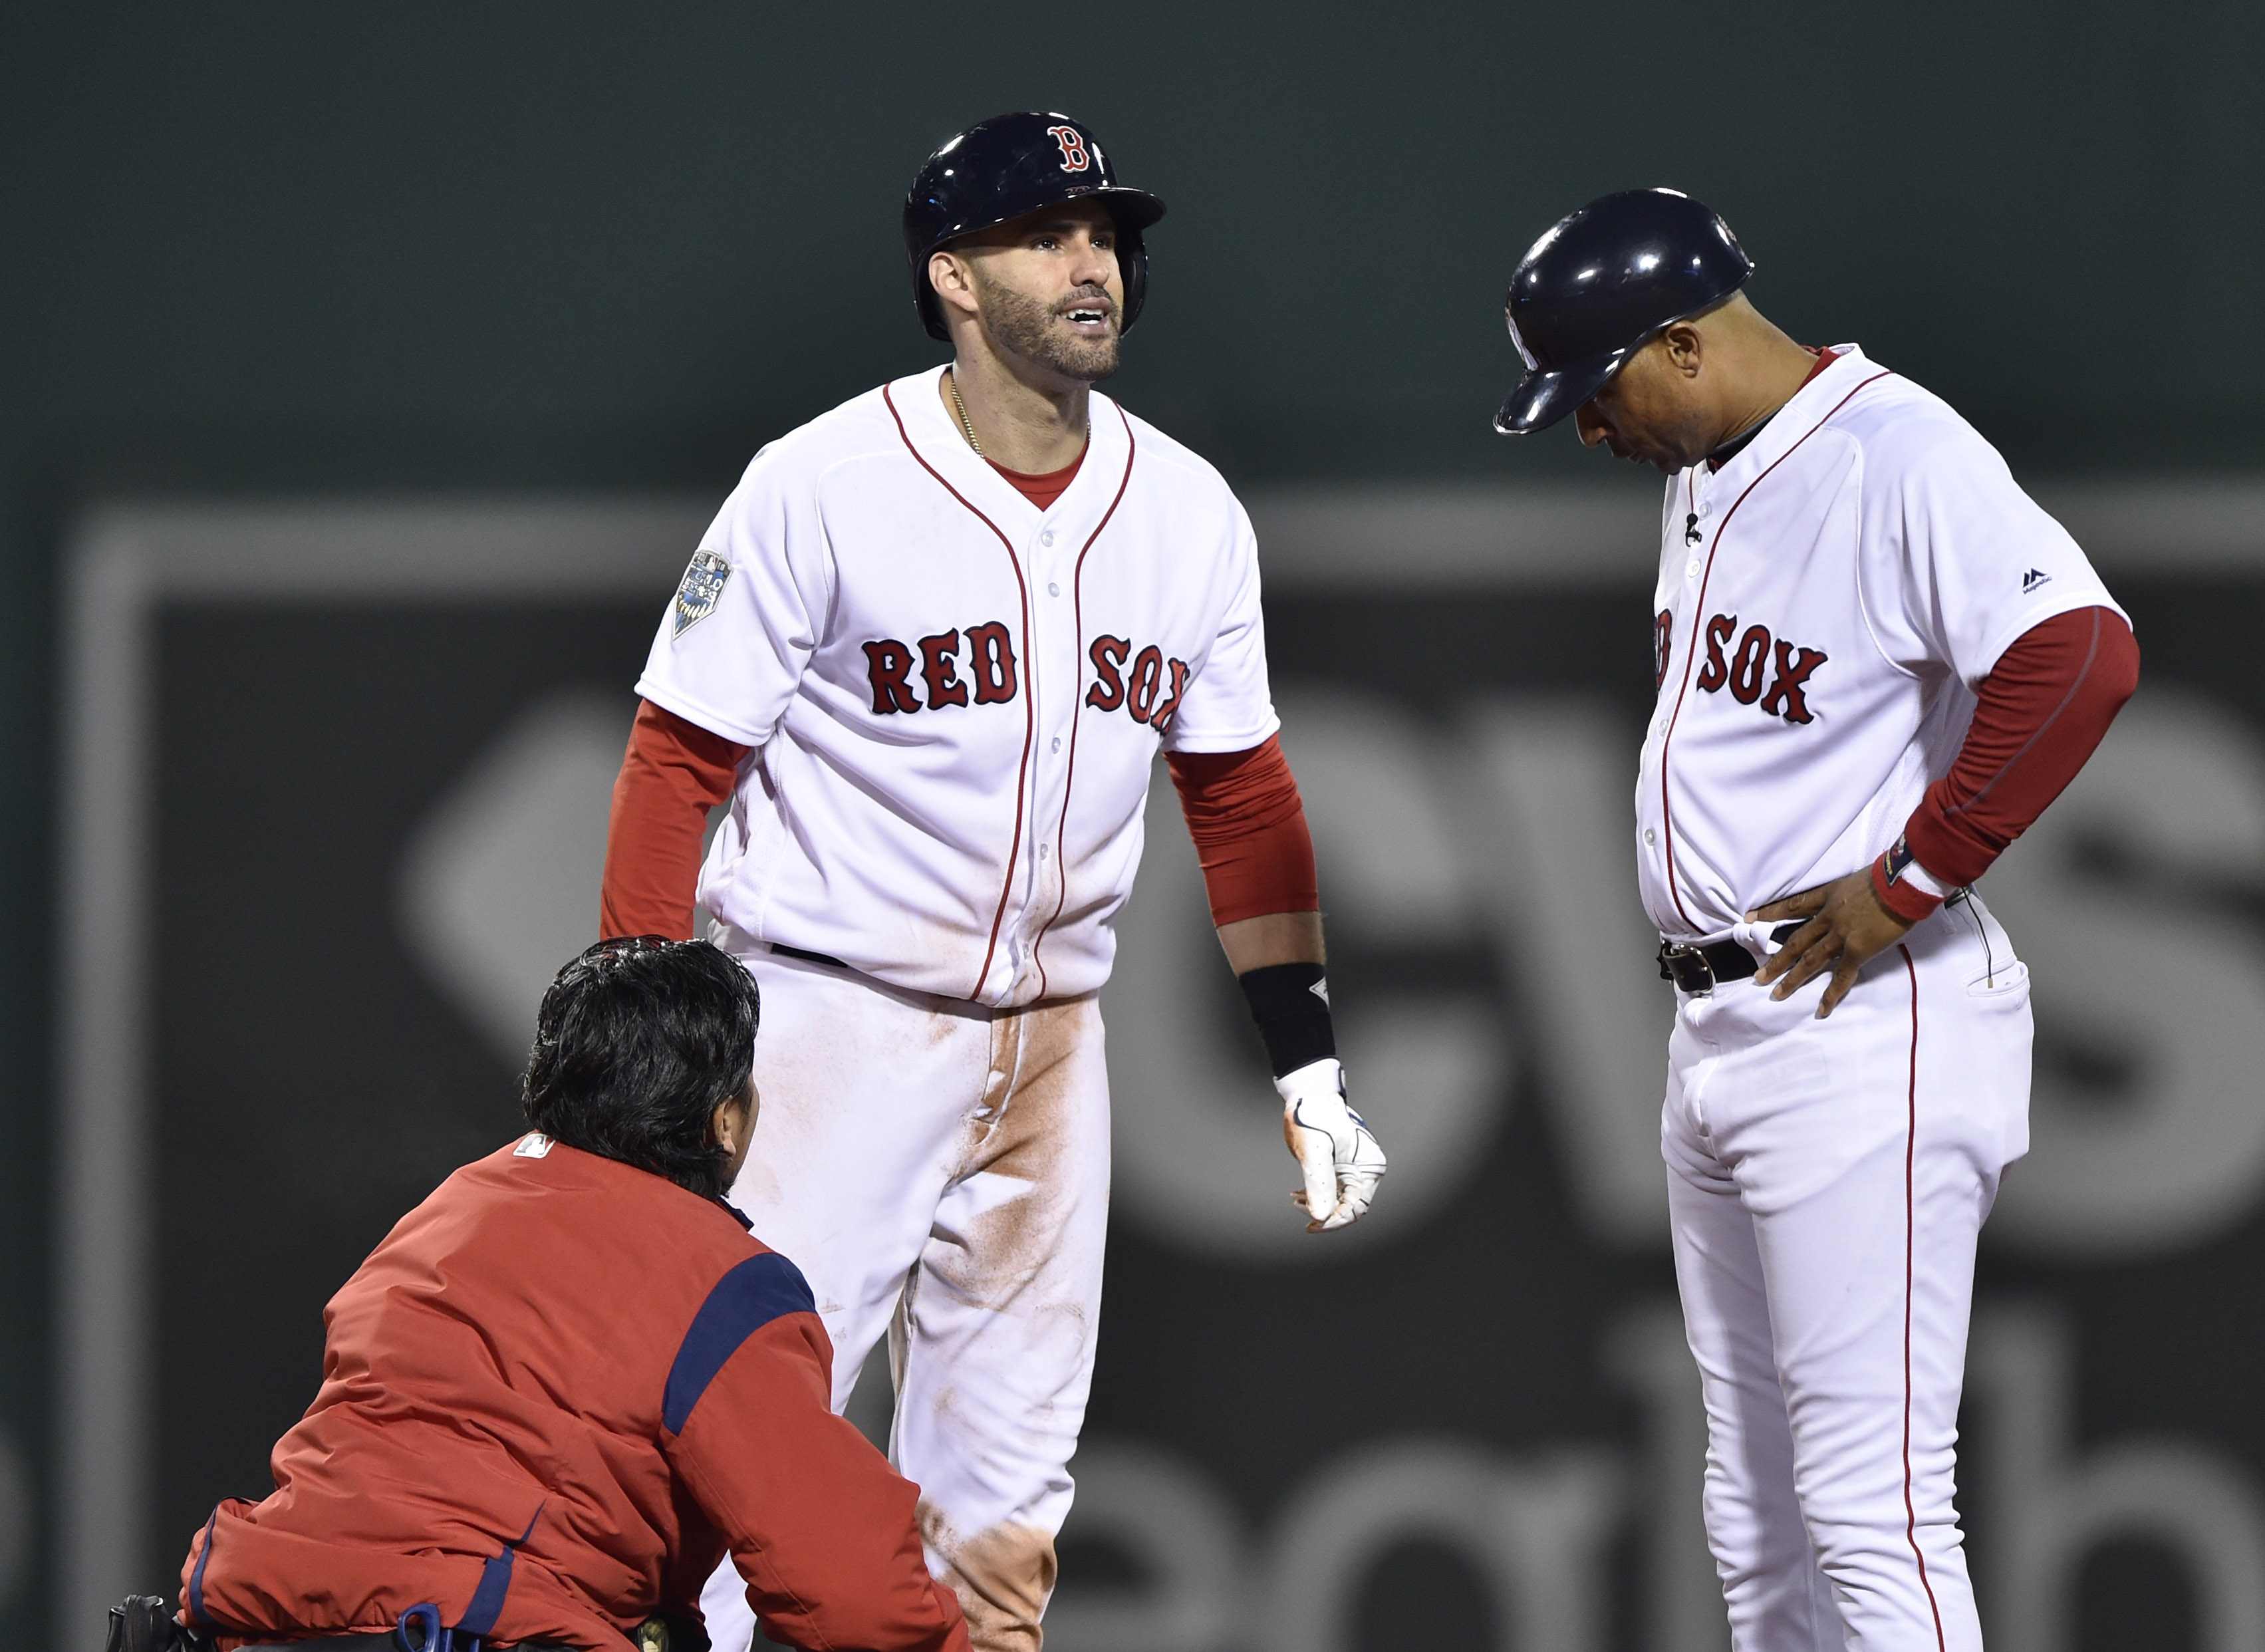 Red Sox do not need to panic over J.D Martinez